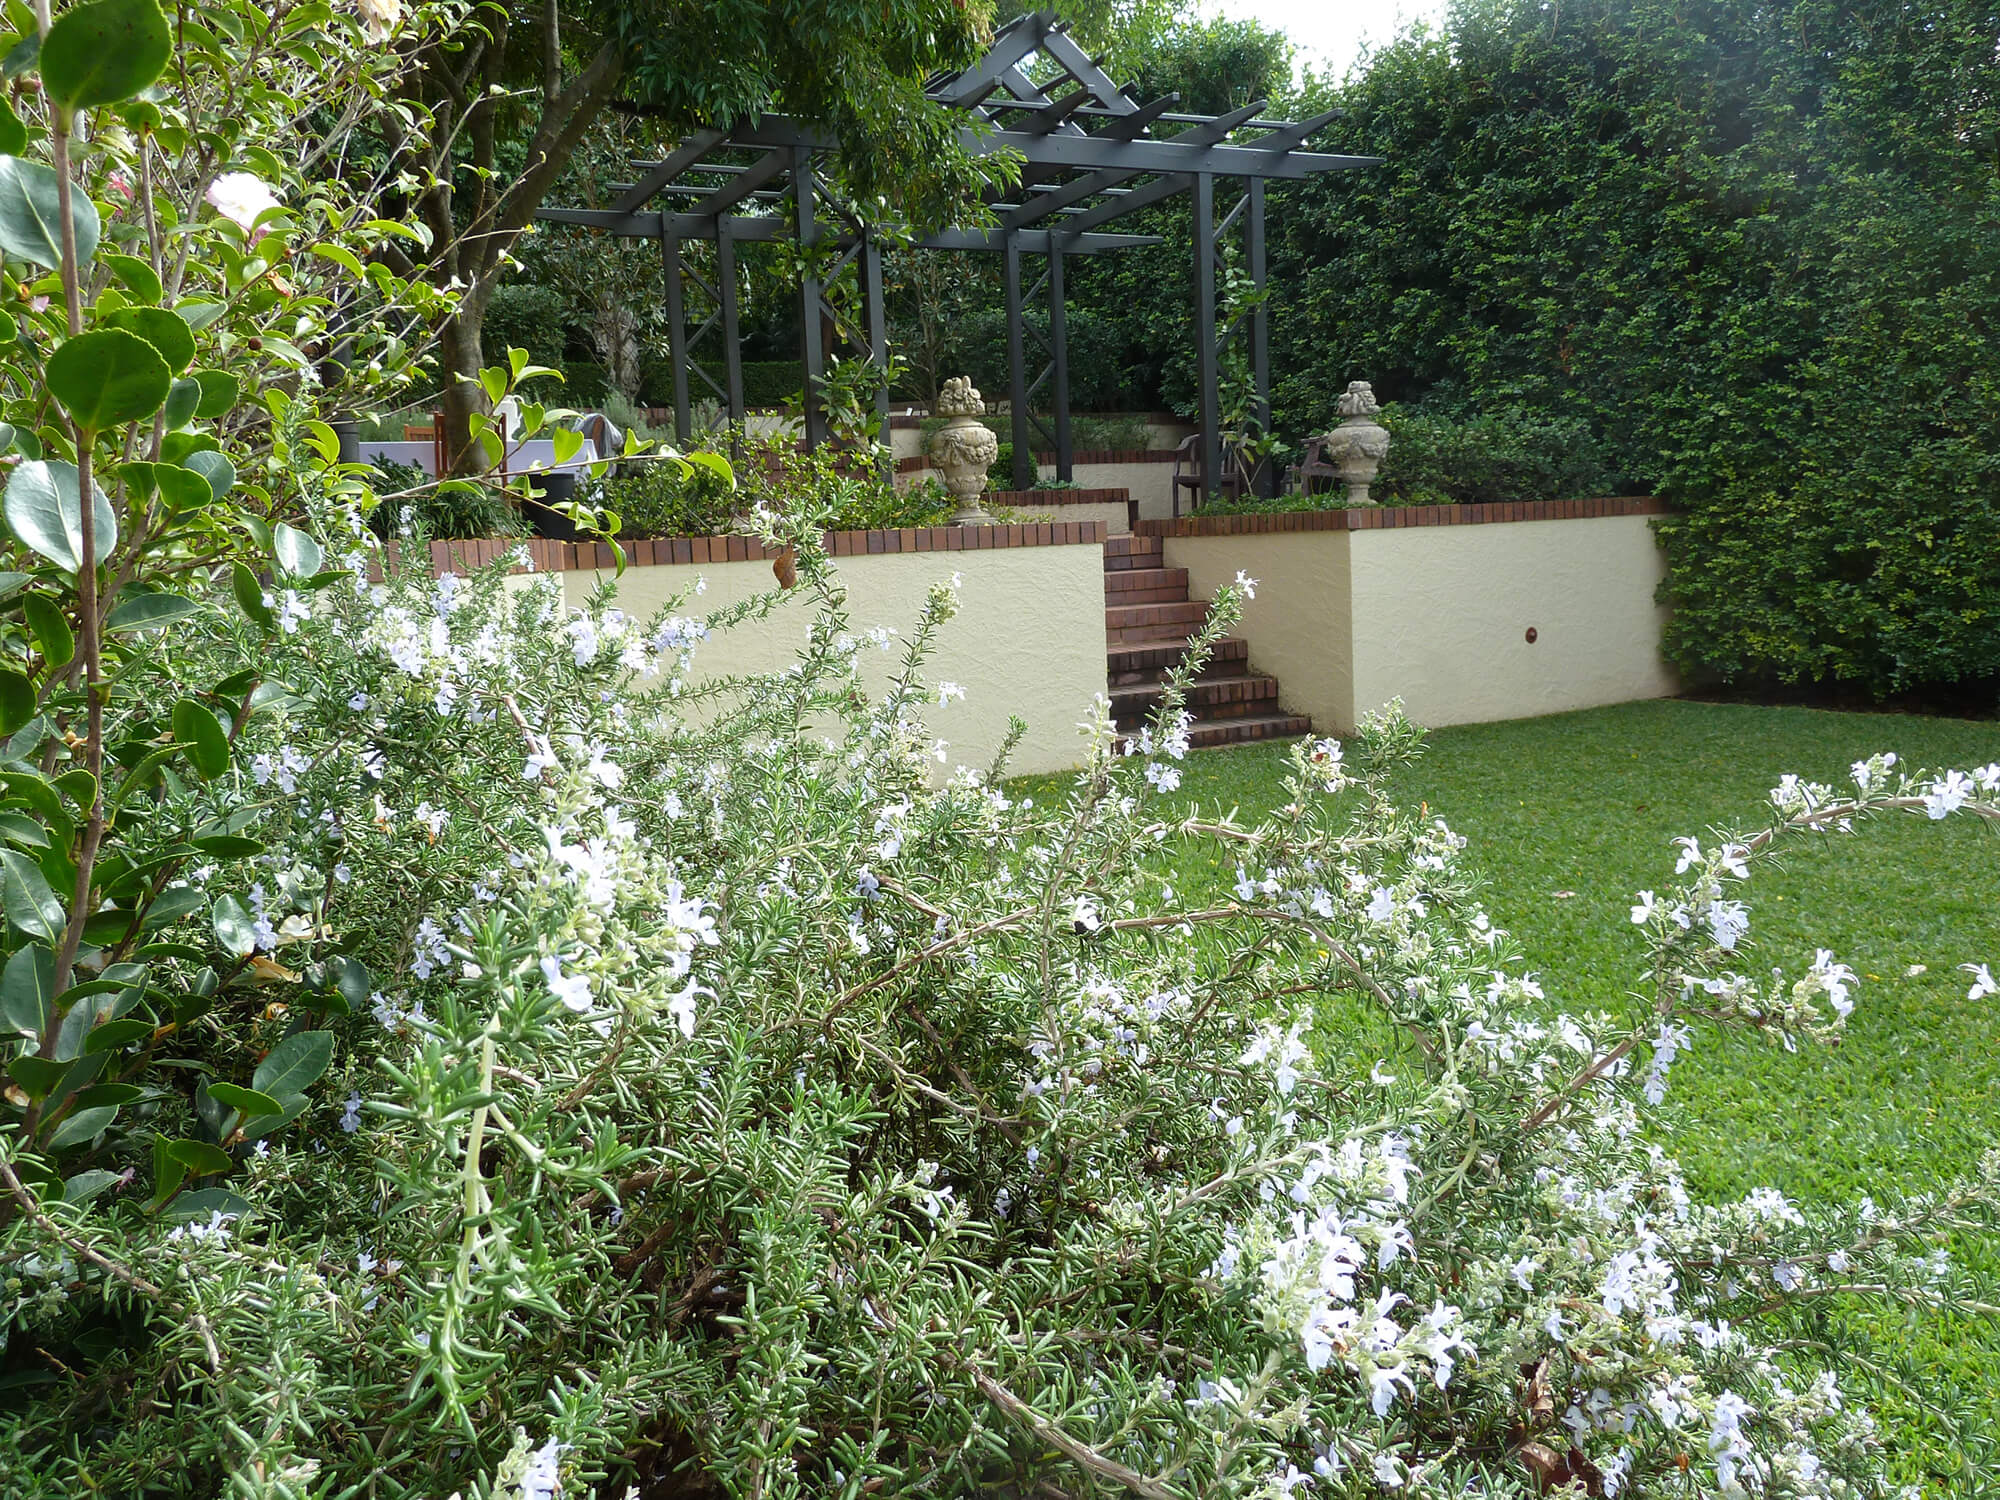 Formal garden design clayfield boss gardenscapes for The garden design team newark